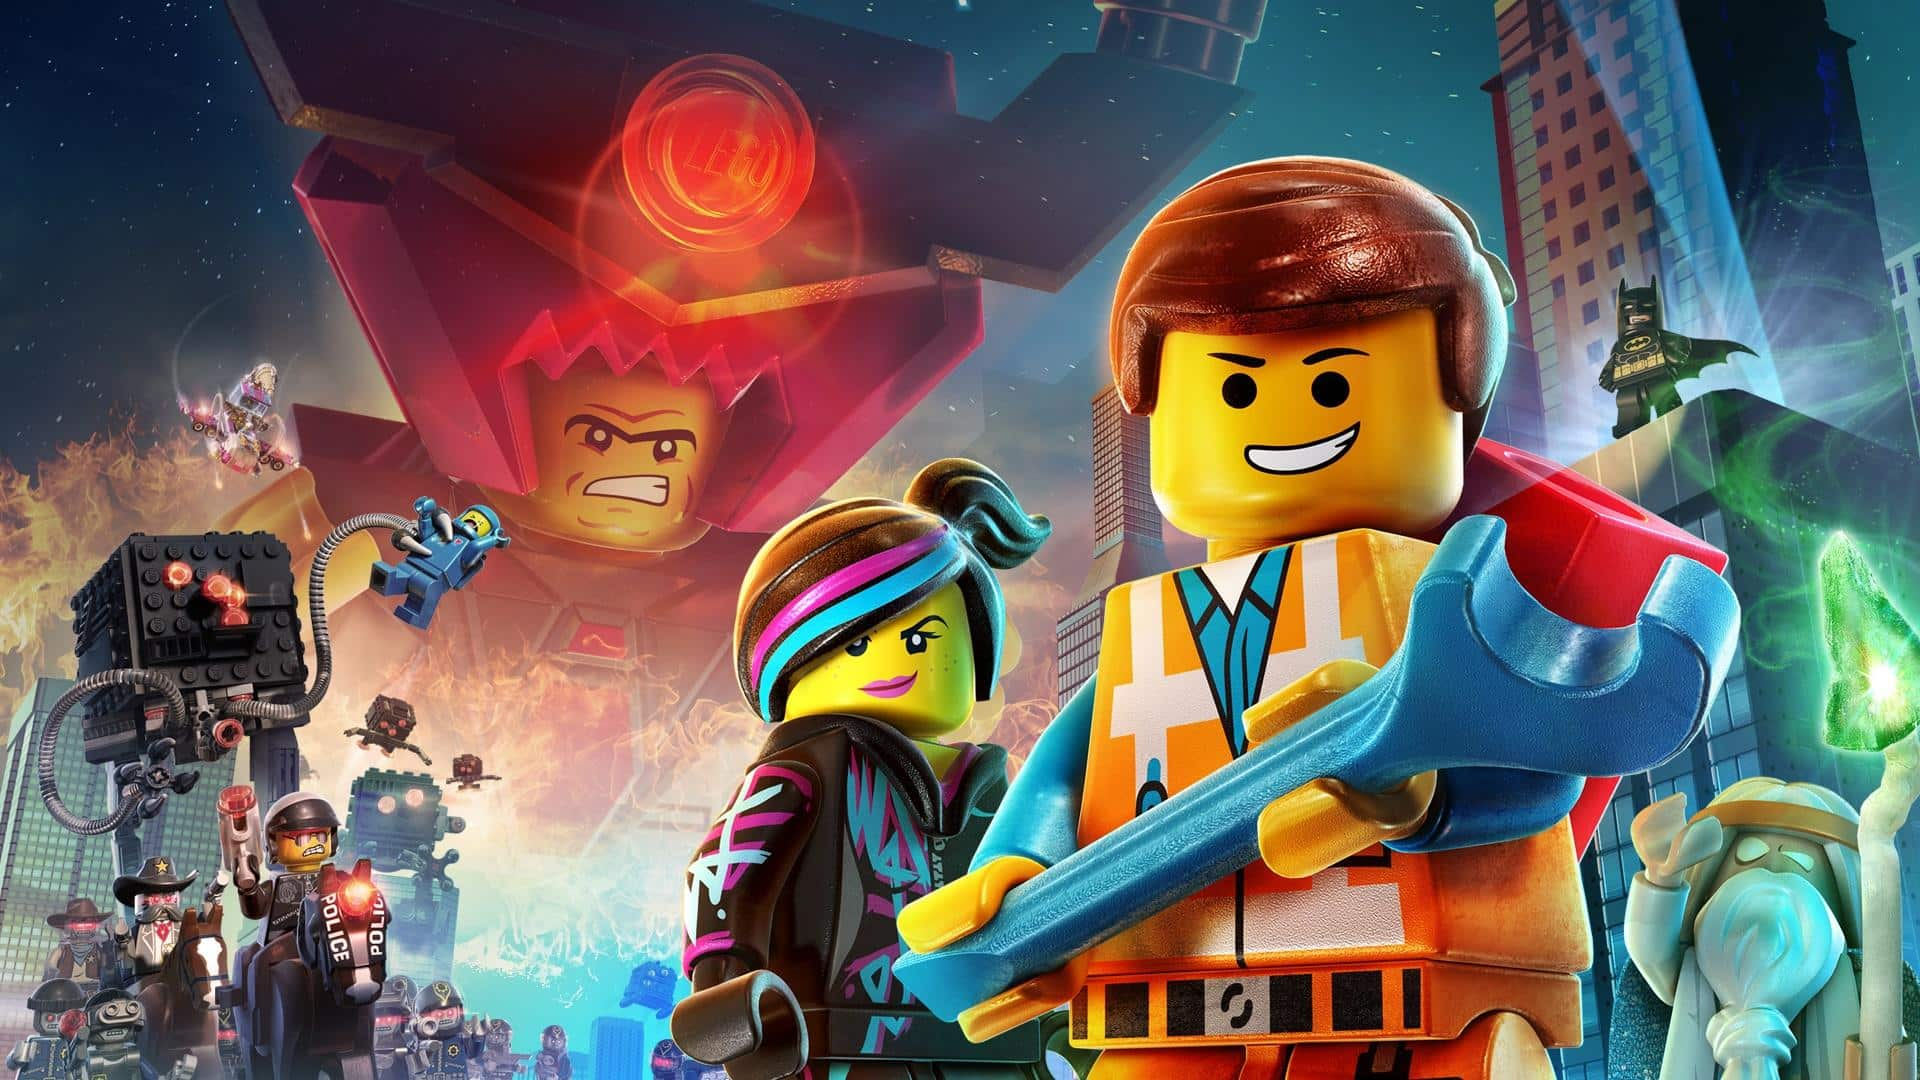 the-lego-movie-2014-movie_jcqx